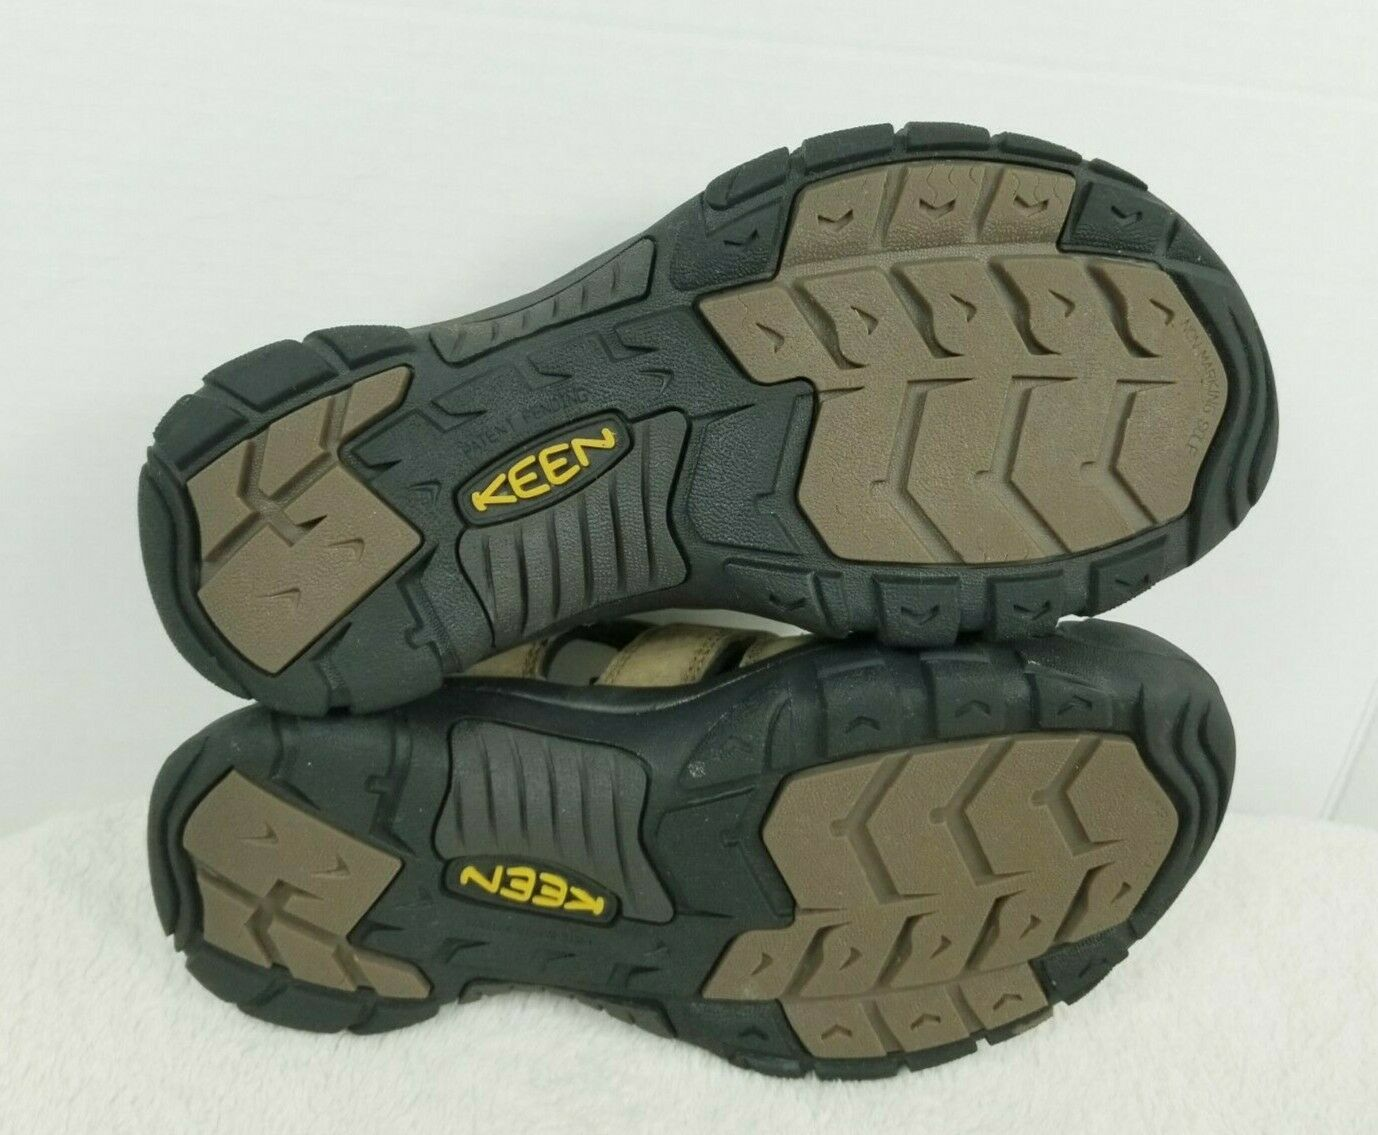 KEEN Newport Leather Hiking Sandals - 110220-BISN… - image 8